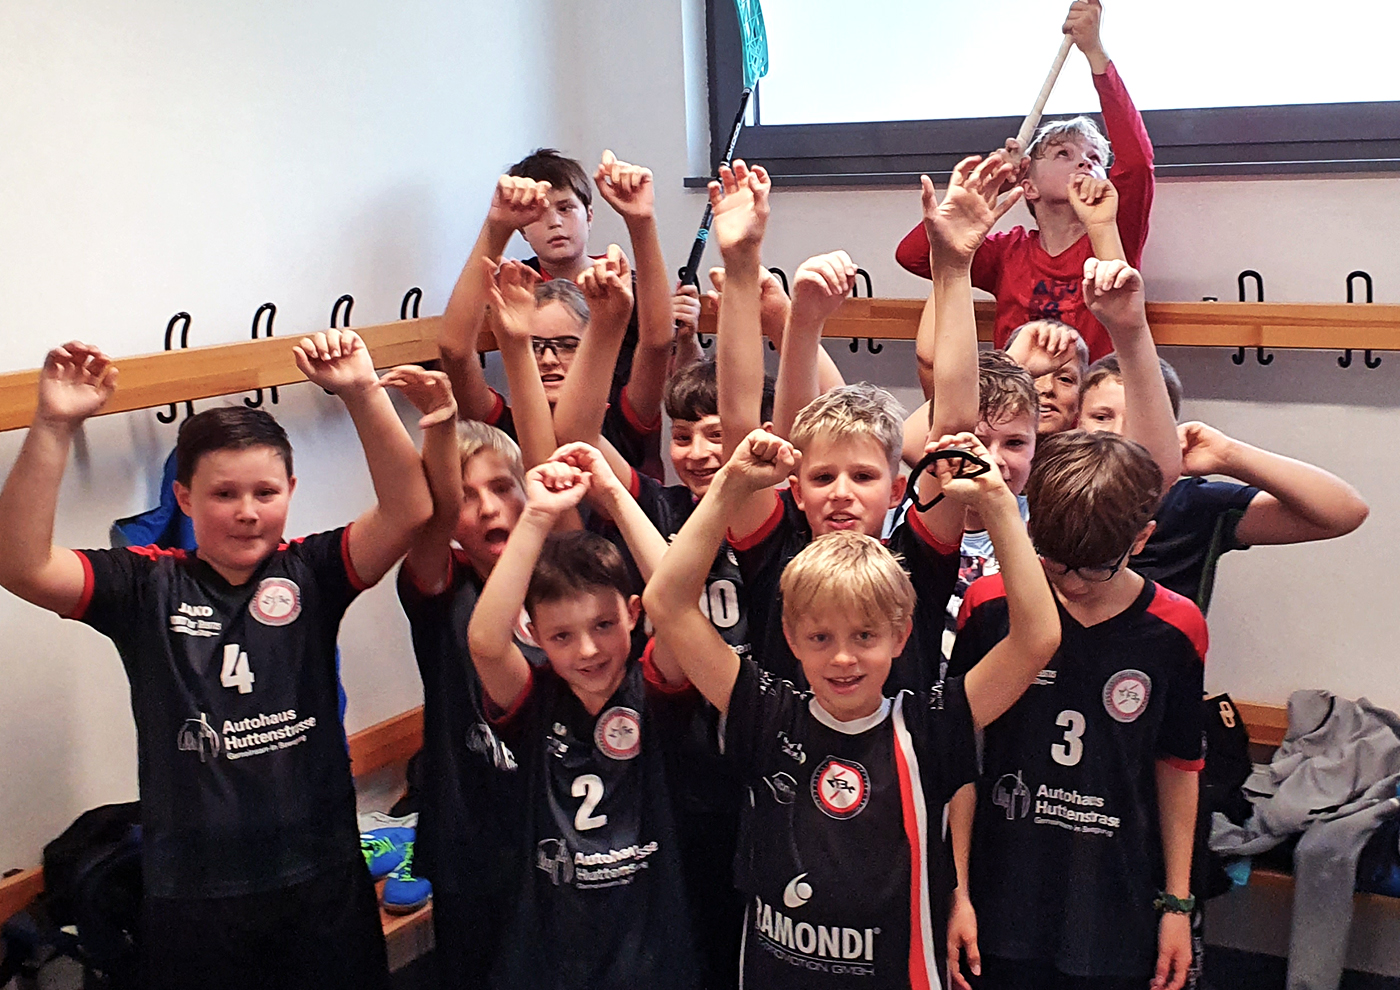 https://floorball-mfbc.de/wp-content/uploads/2020/10/U13-MFBC-Leipzig-21.jpg